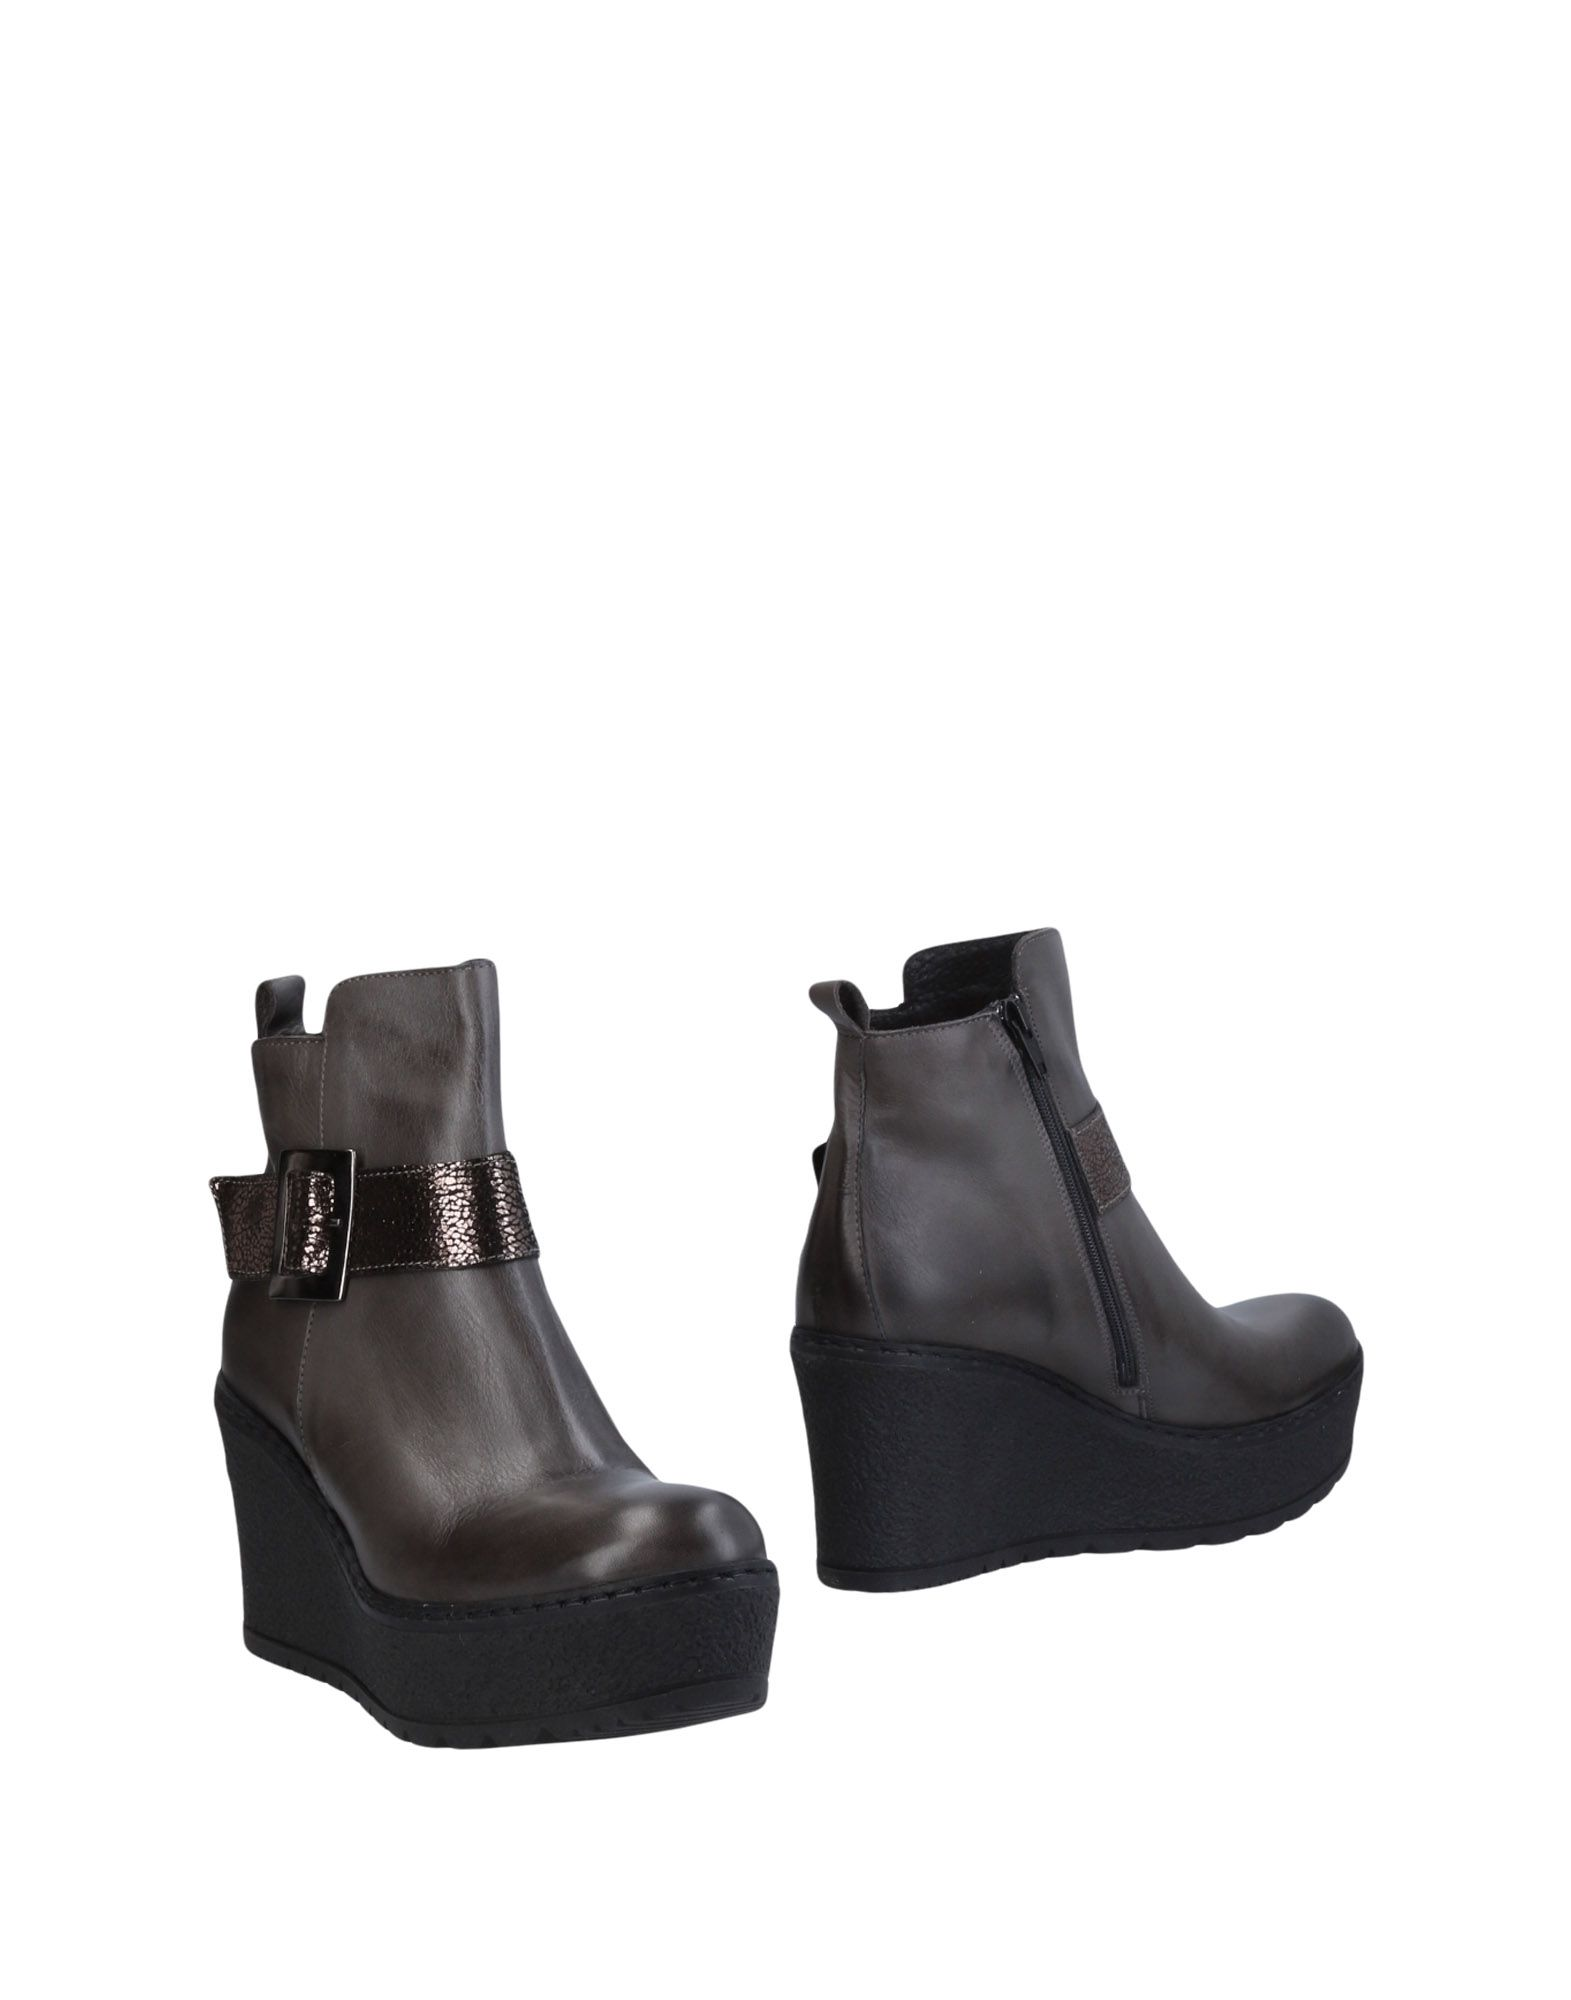 Tsd12 Ankle Boot - Women Tsd12 Ankle Boots online 11454074DQ on  Canada - 11454074DQ online 2e7450